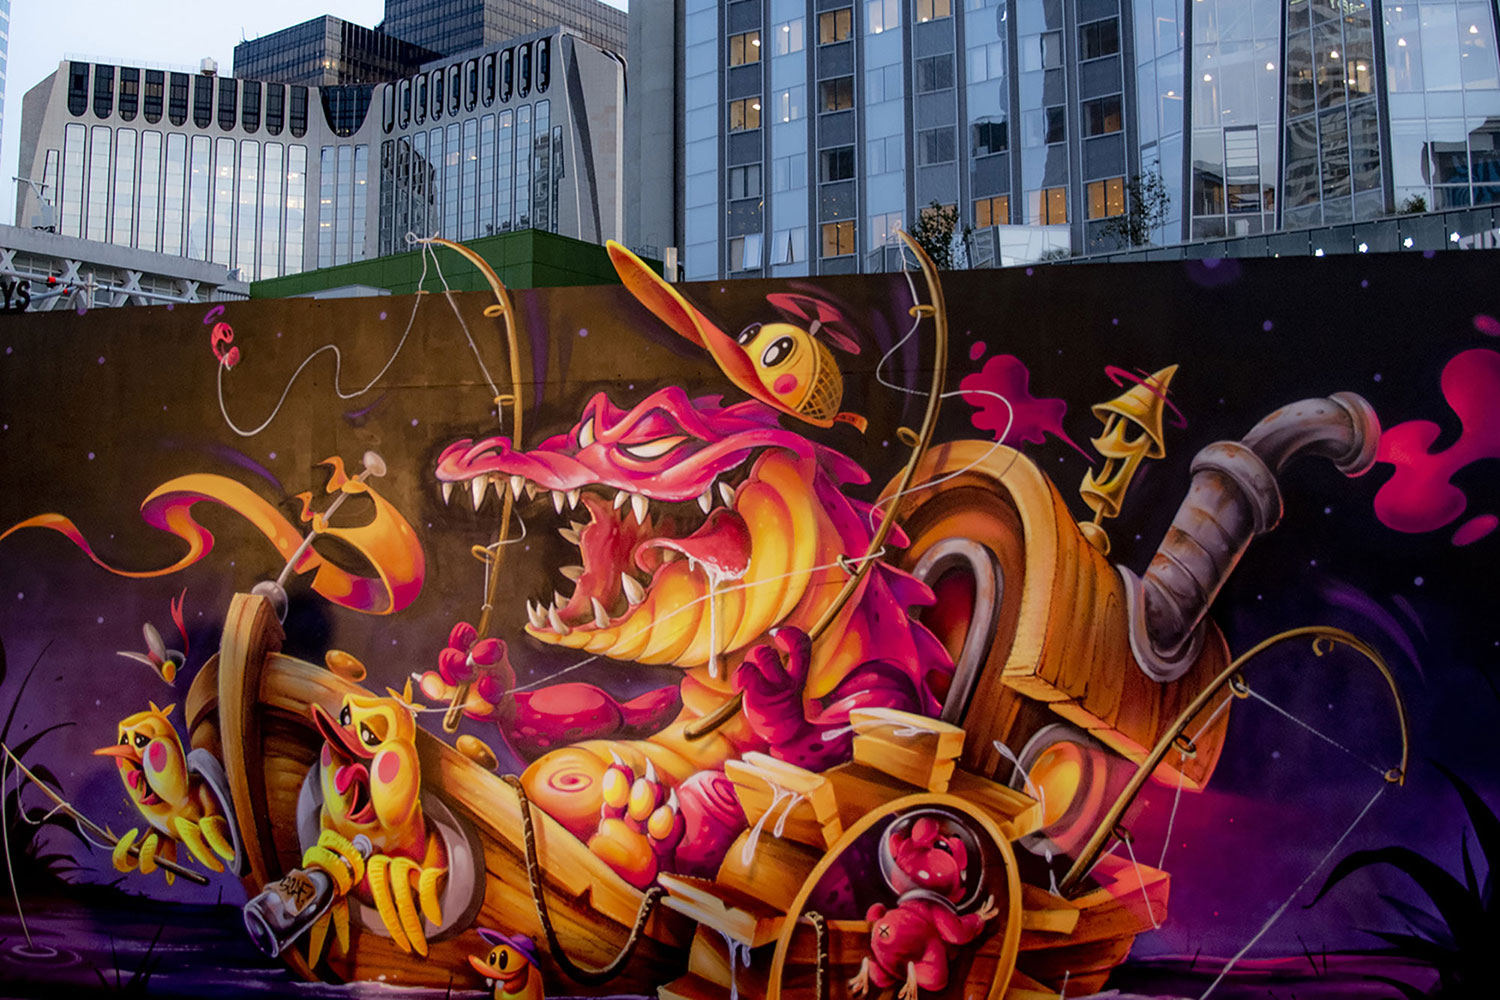 Urban Week Festival Paris La Defense, Street Art graffitti by Abys Osmoz, September 18, 2020, France, (Nos Dren).